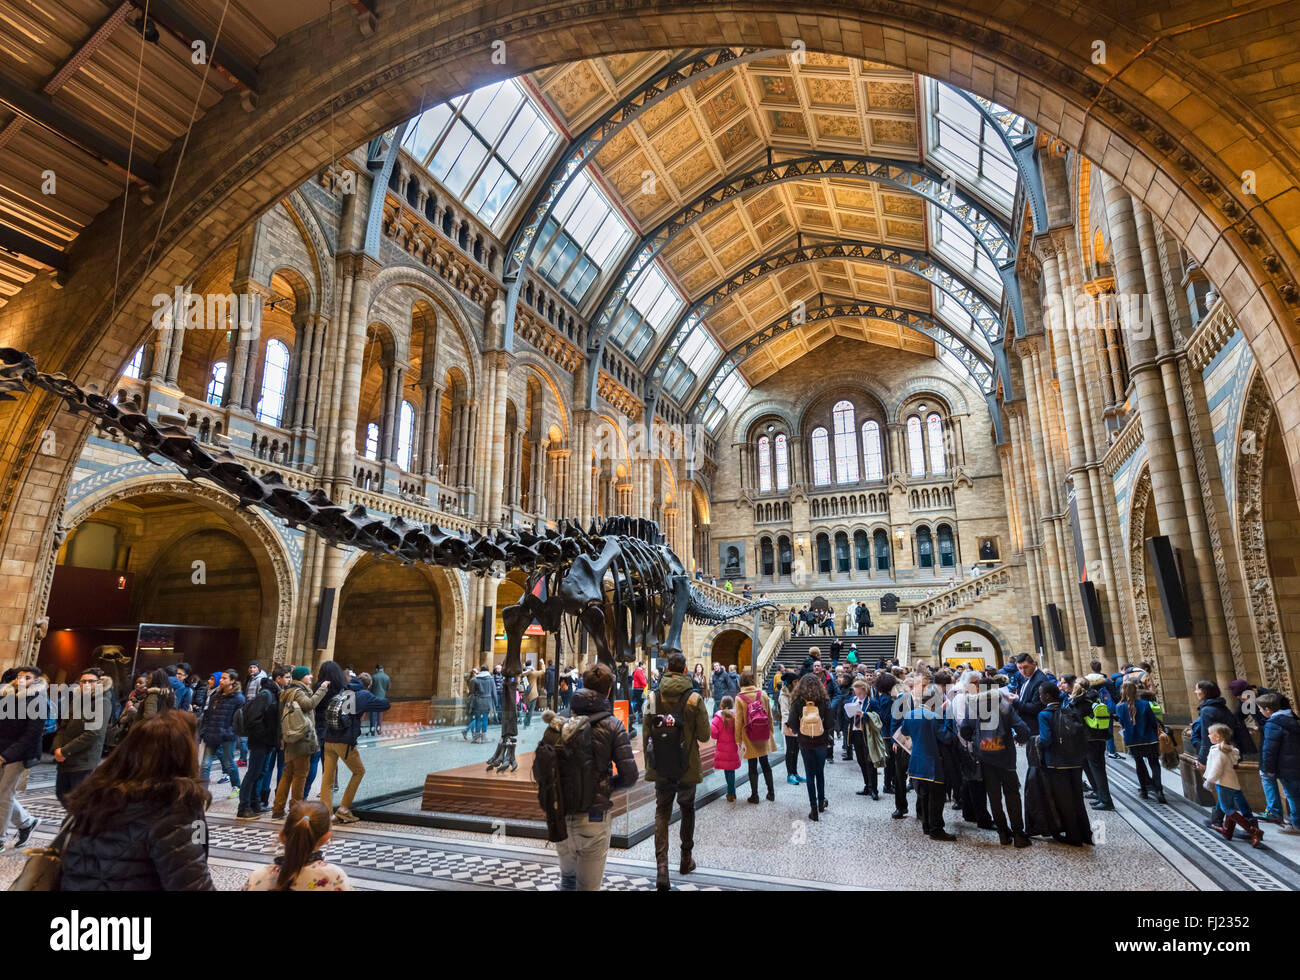 Hintze Hall with 'Dippy' the Diplodocus, a fossil skeleton cast, Natural History Museum, South Kensington, - Stock Image